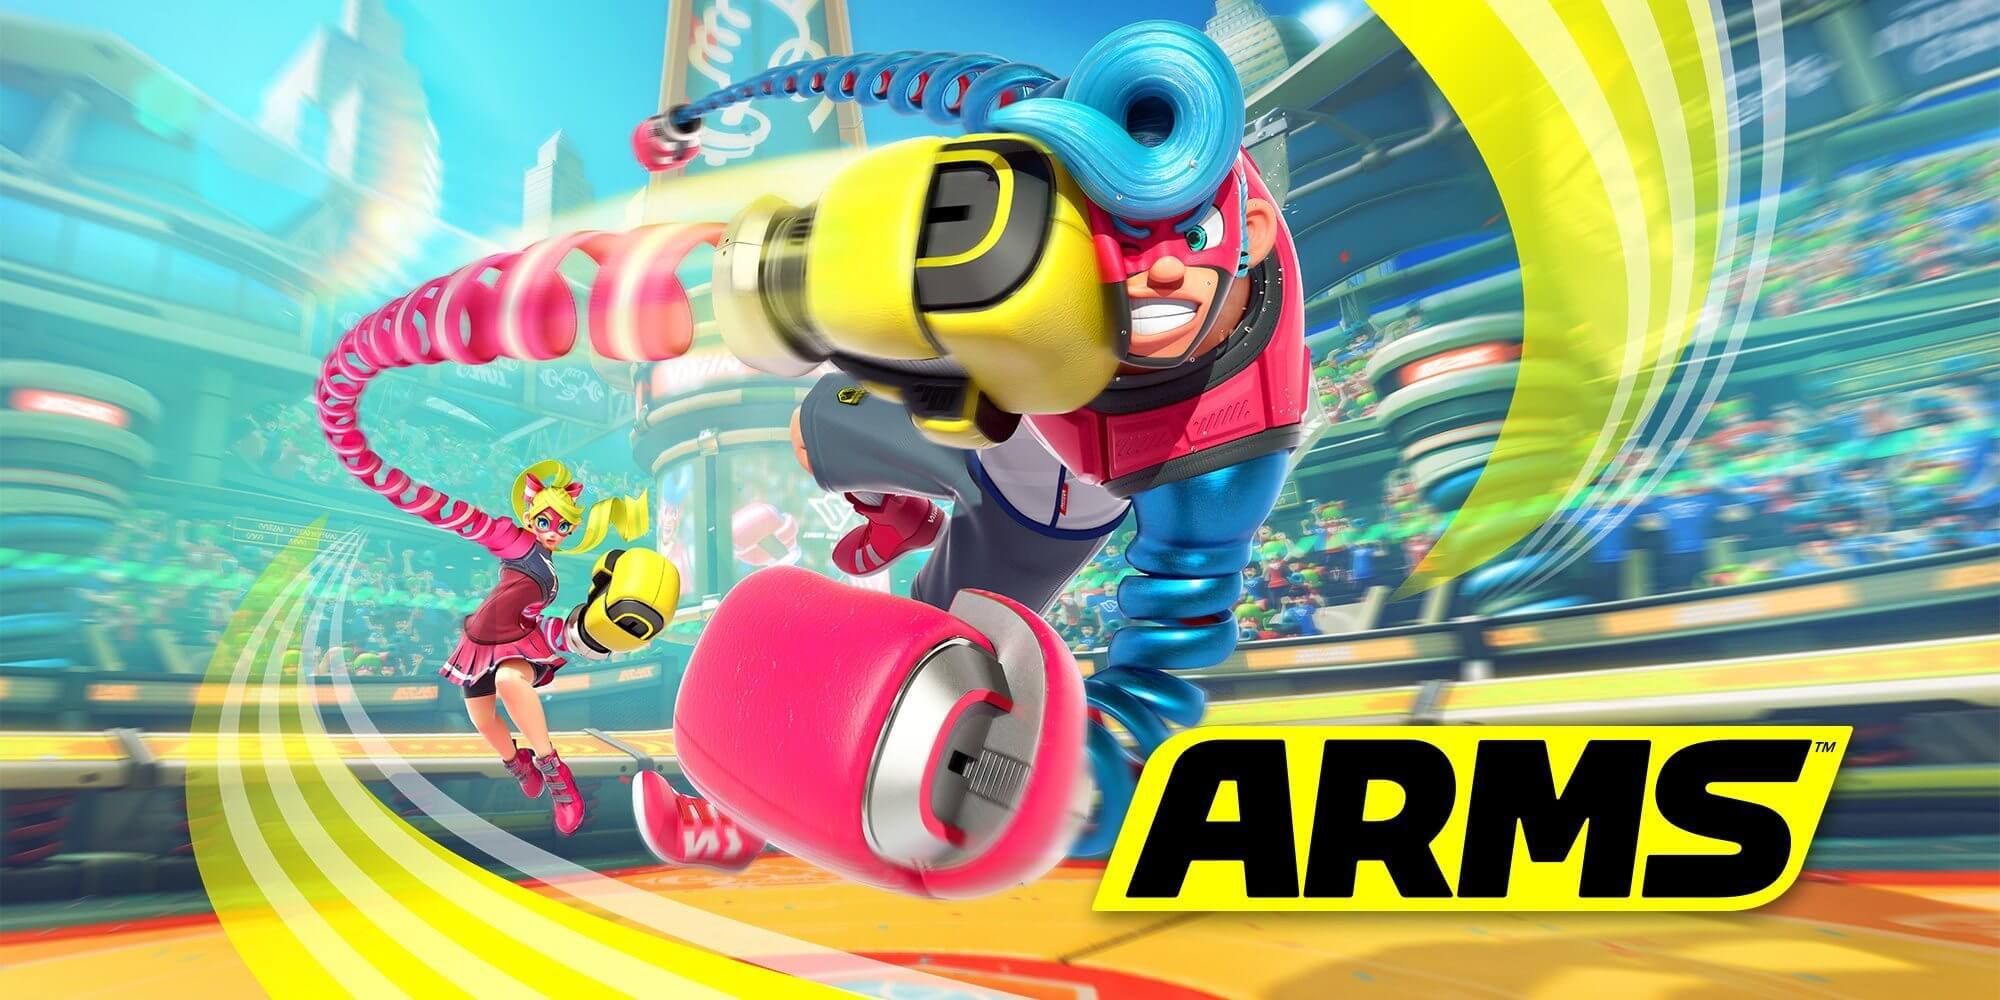 H2x1 NSwitch Arms - Confira os destaques da Nintendo Direct de abril